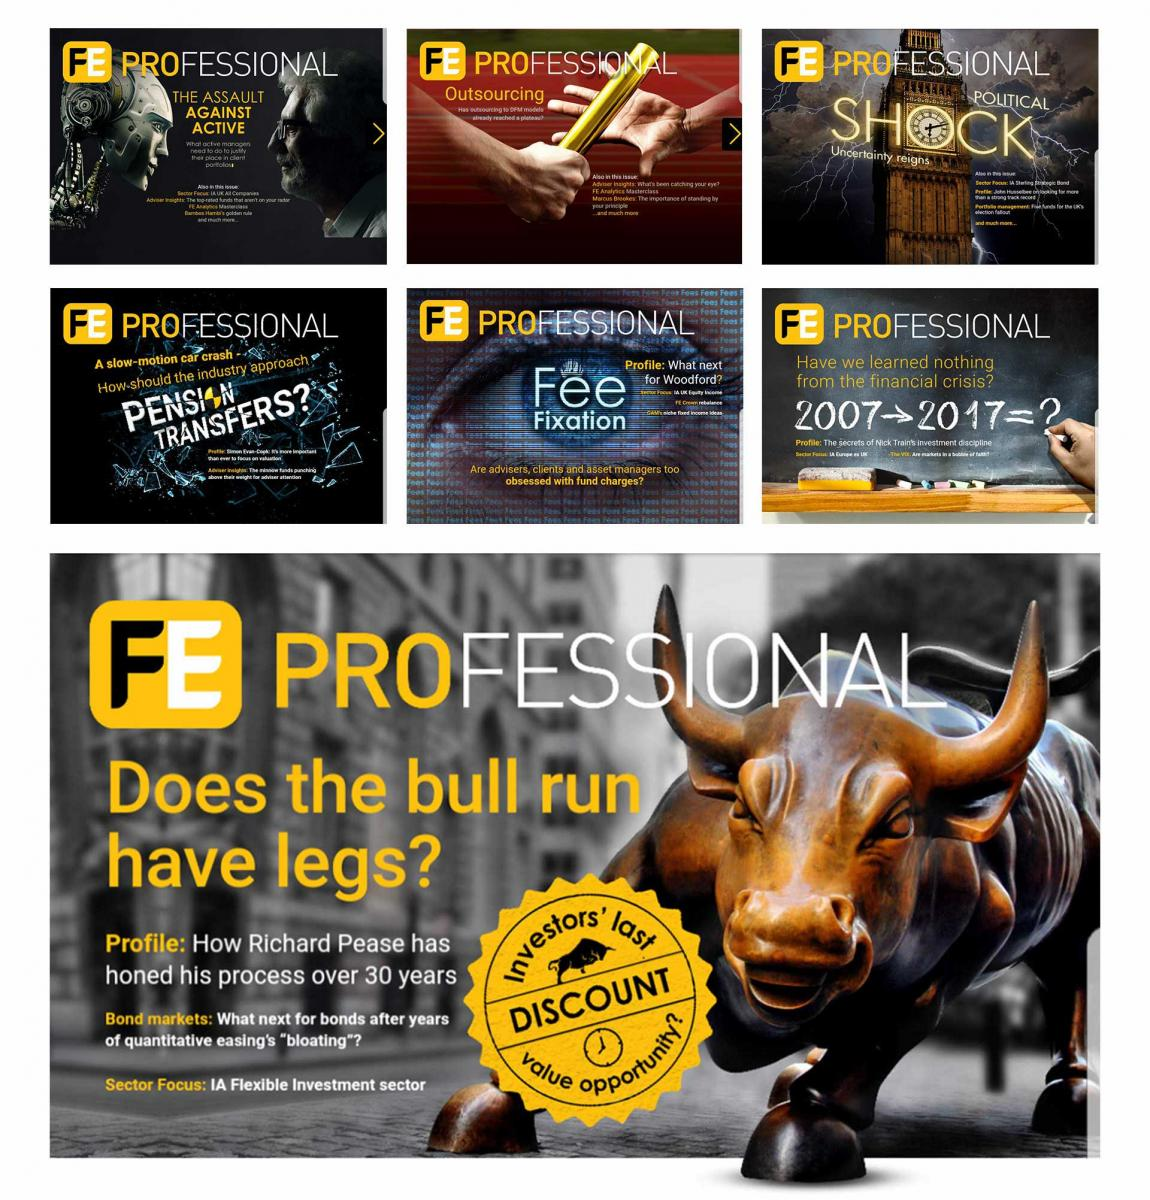 Adlabs Global - monthly issue of FE Professional